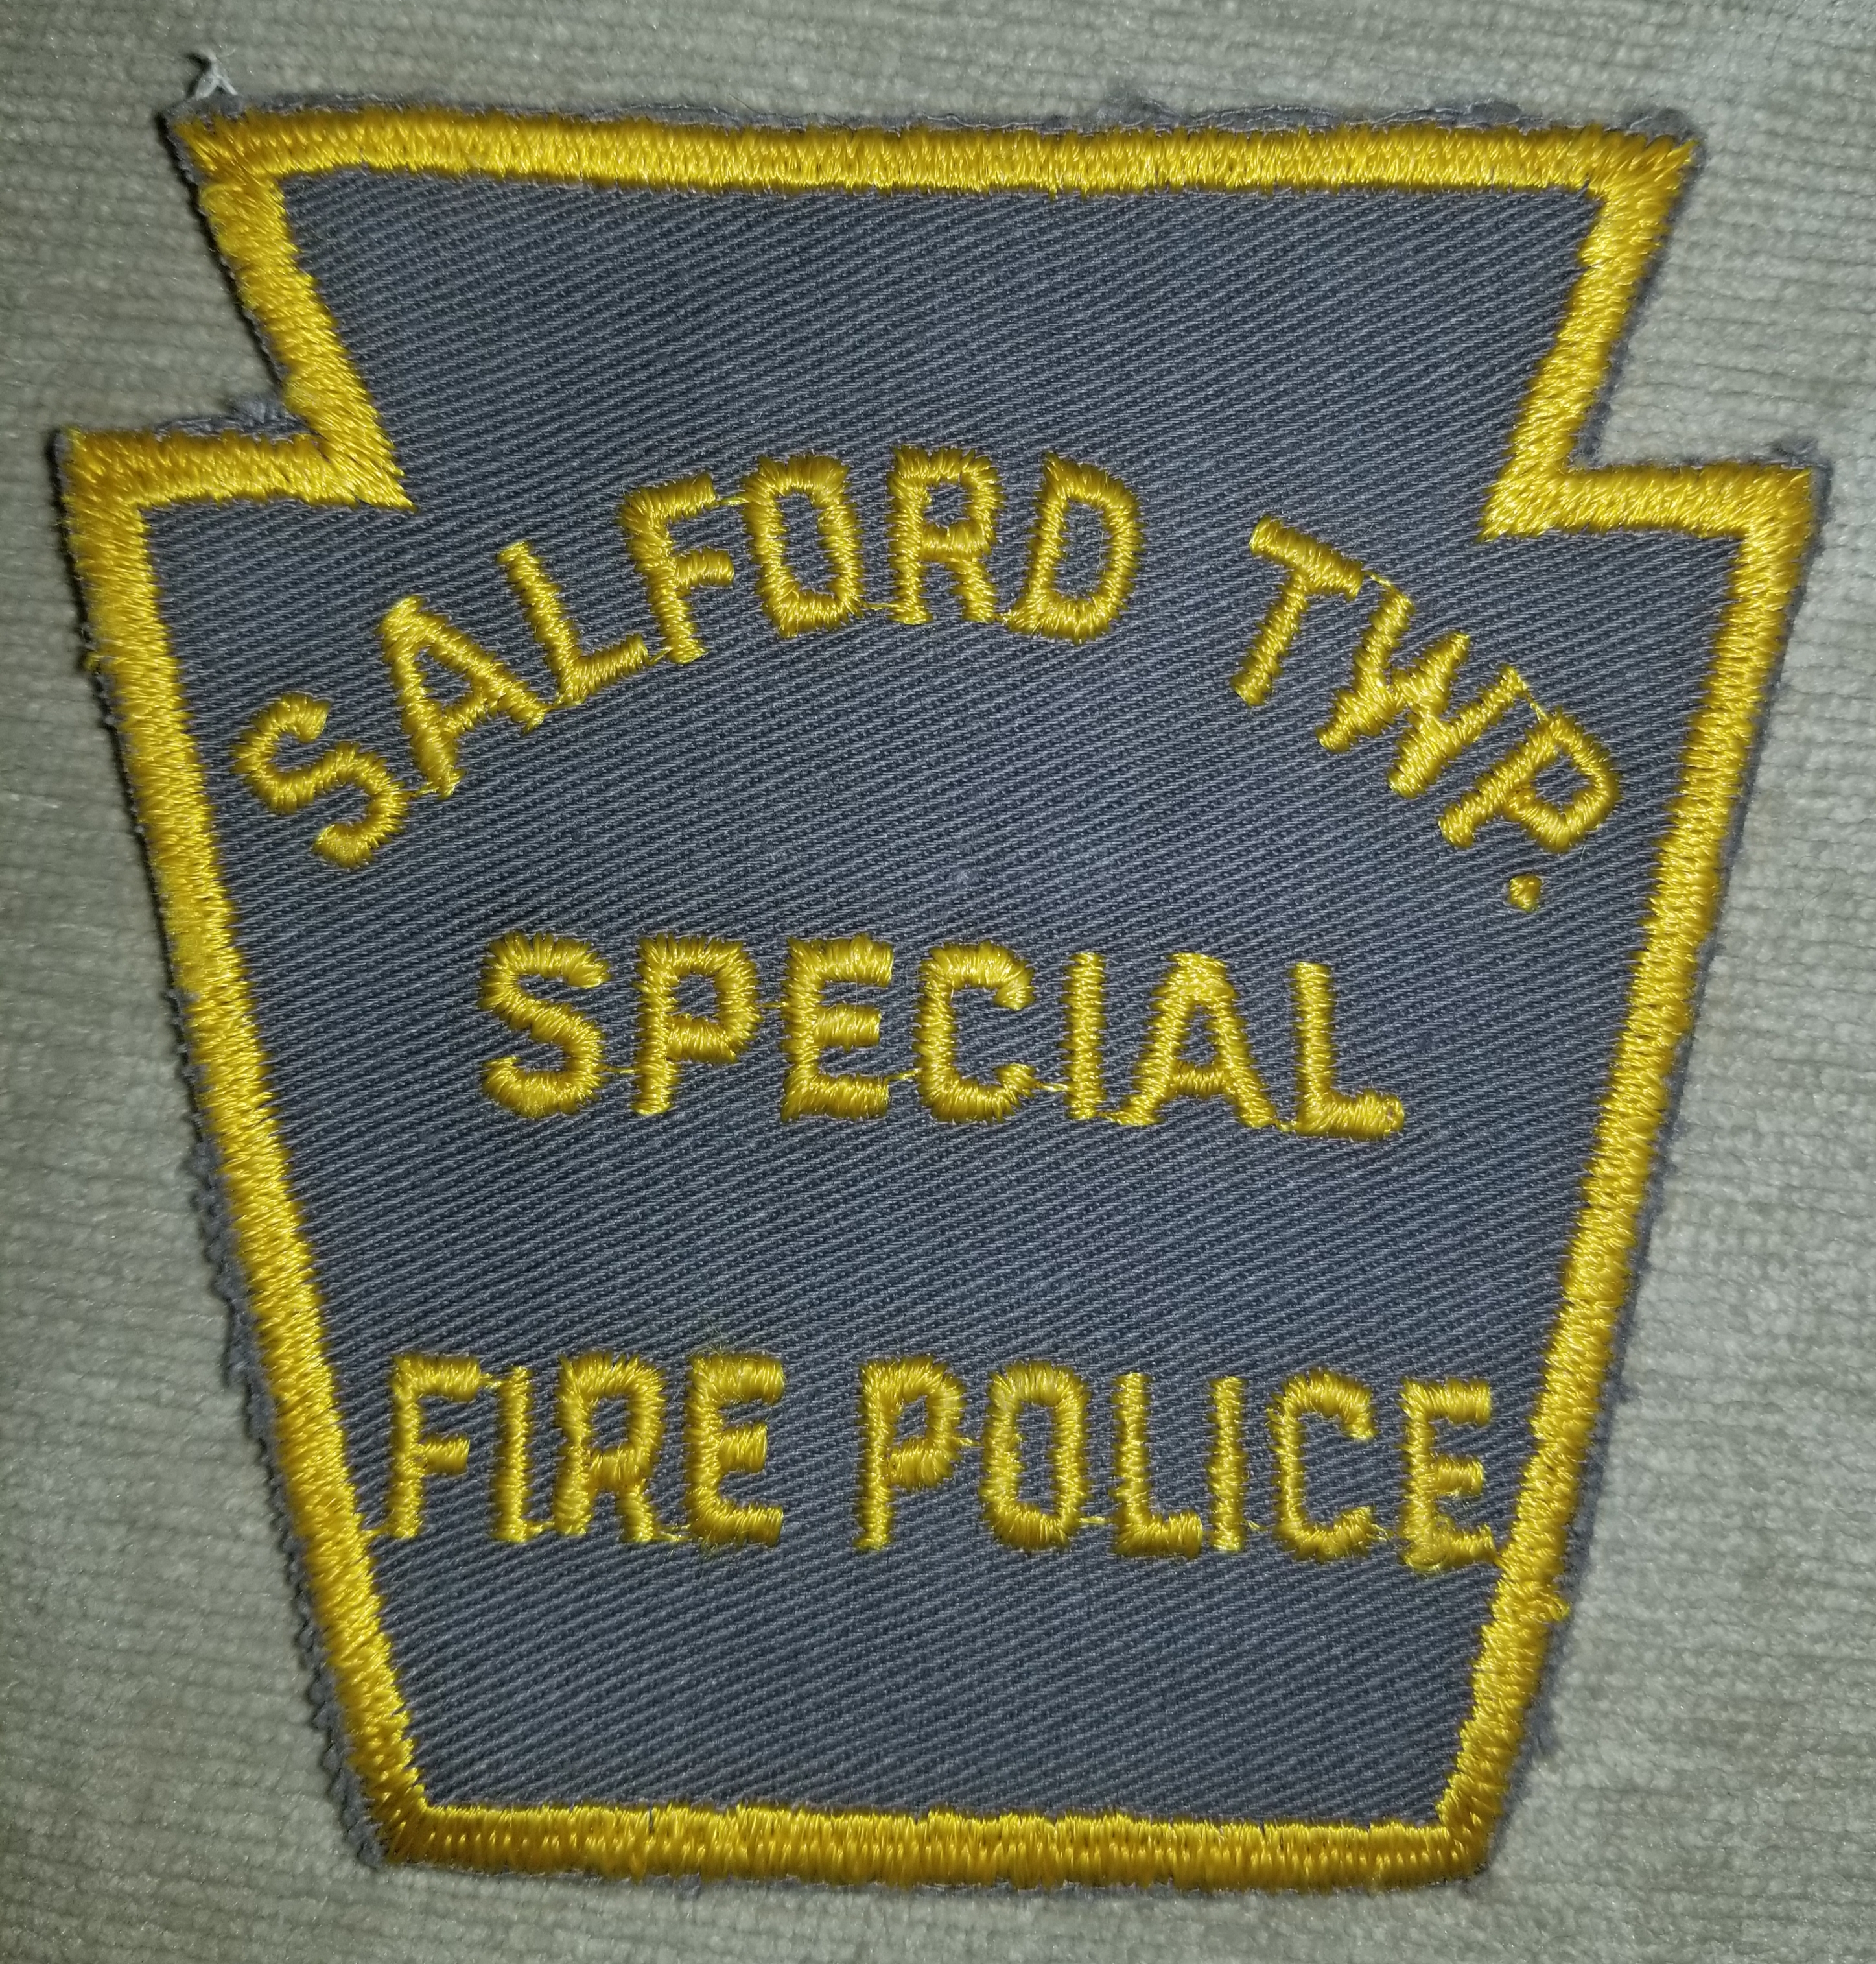 Salford Township Special Fire Police PA